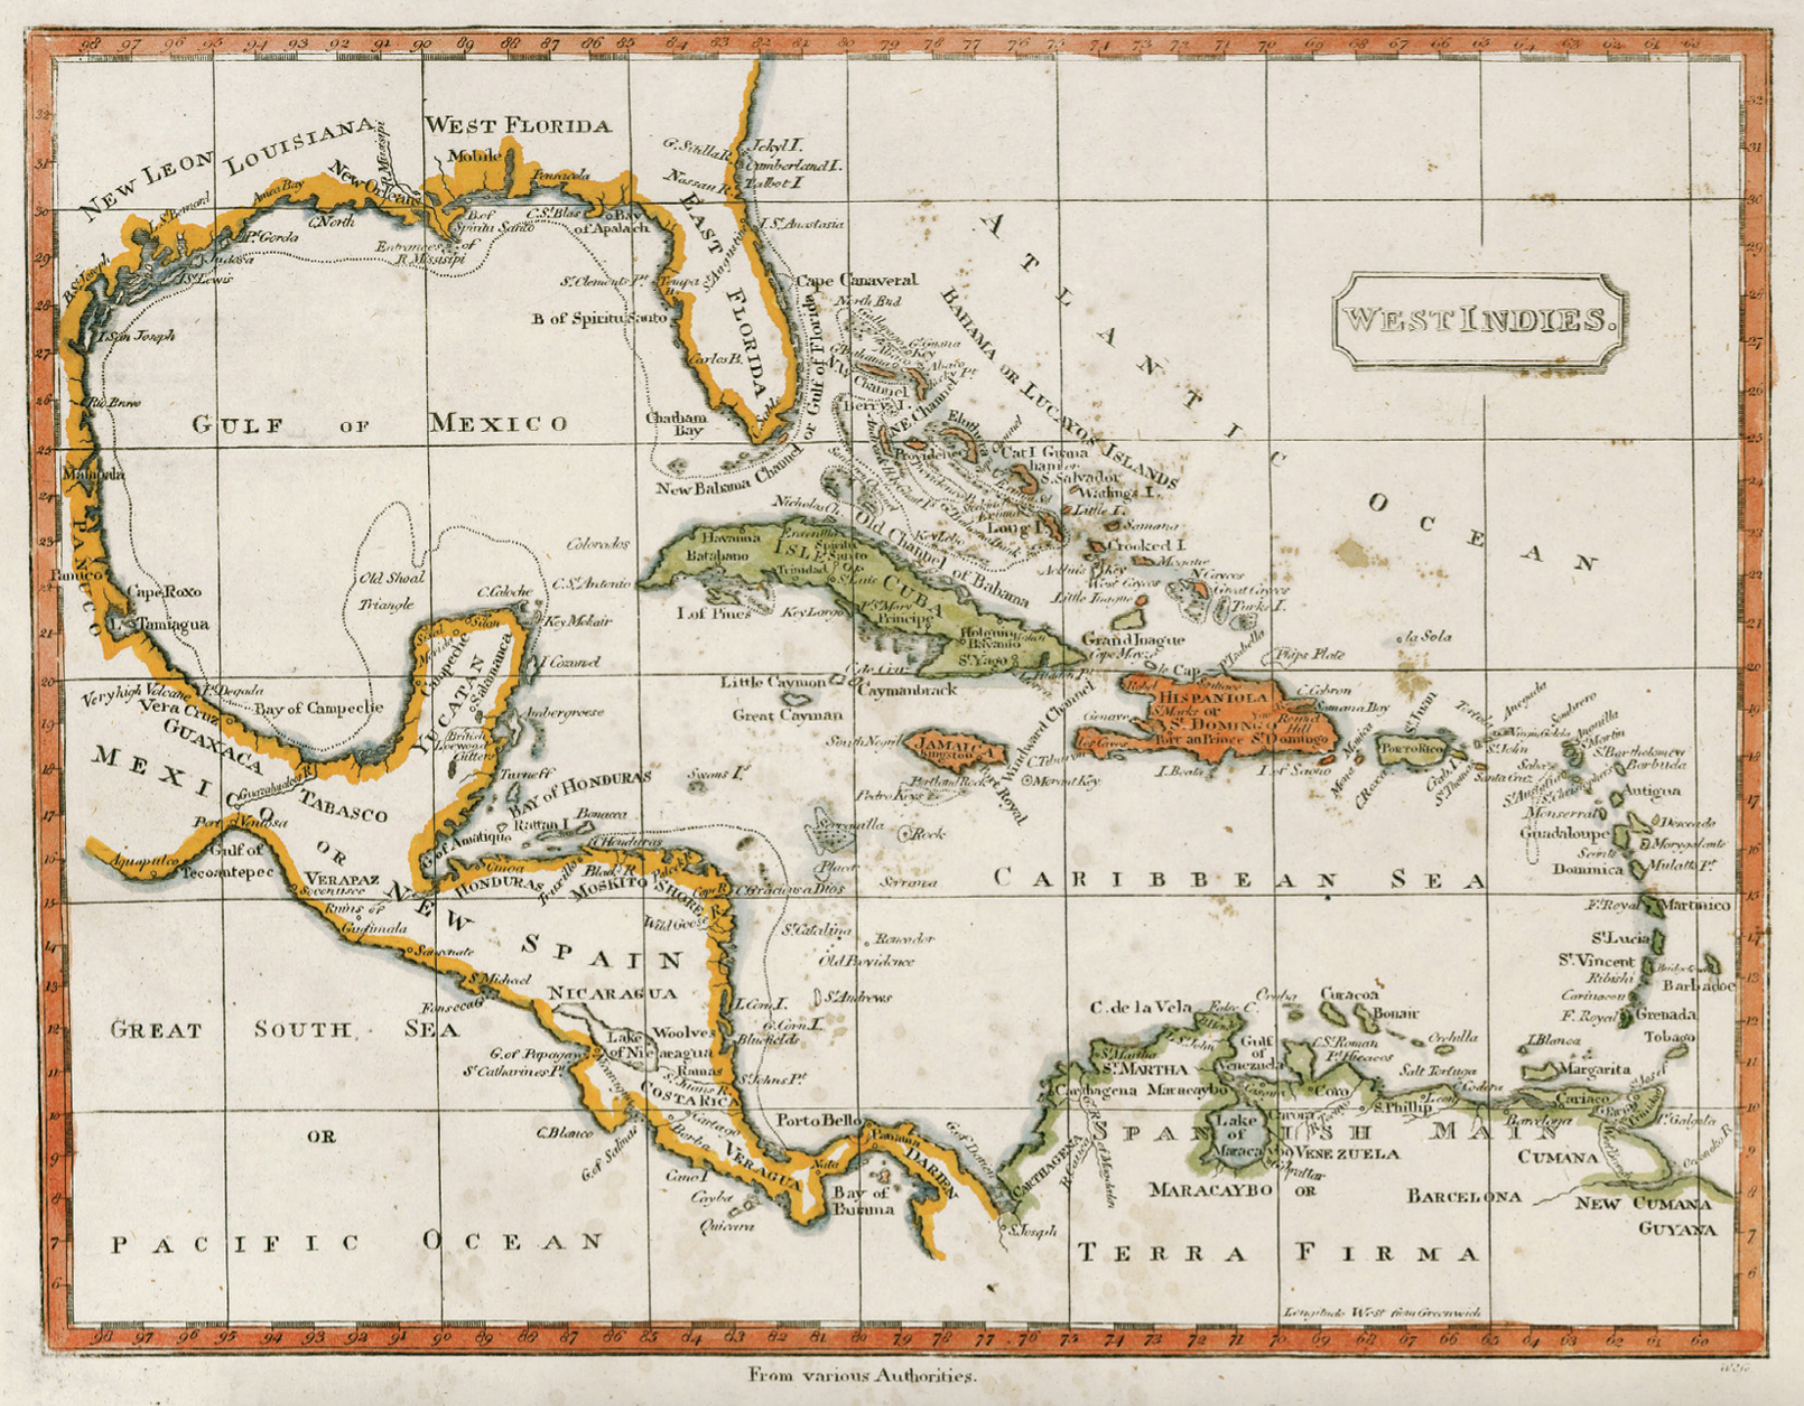 Map of Florida and the Caribbean